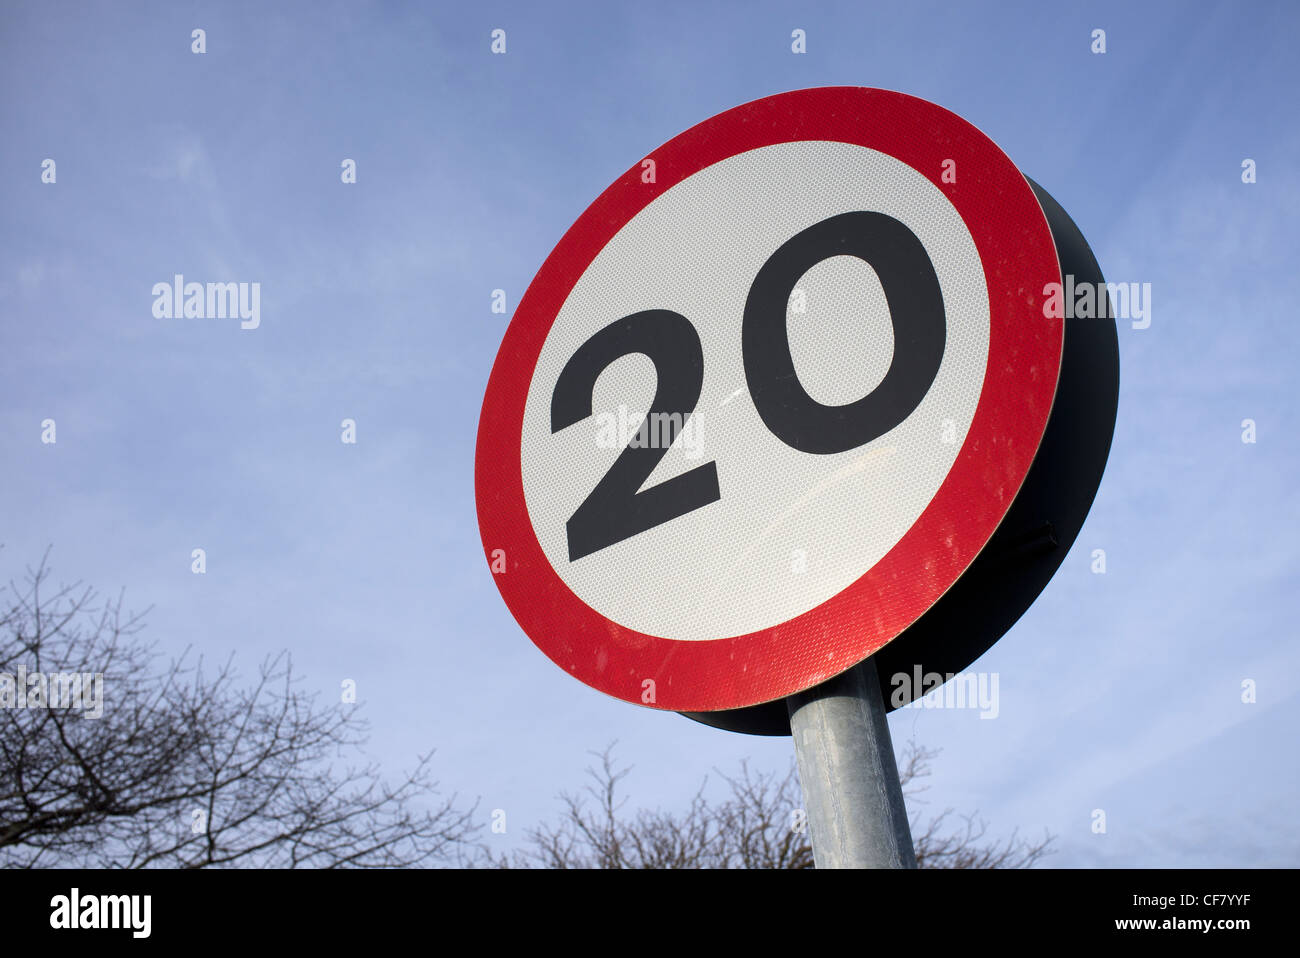 20 miles per hour speed limit road sign Stock Photo: 43816179 - Alamy